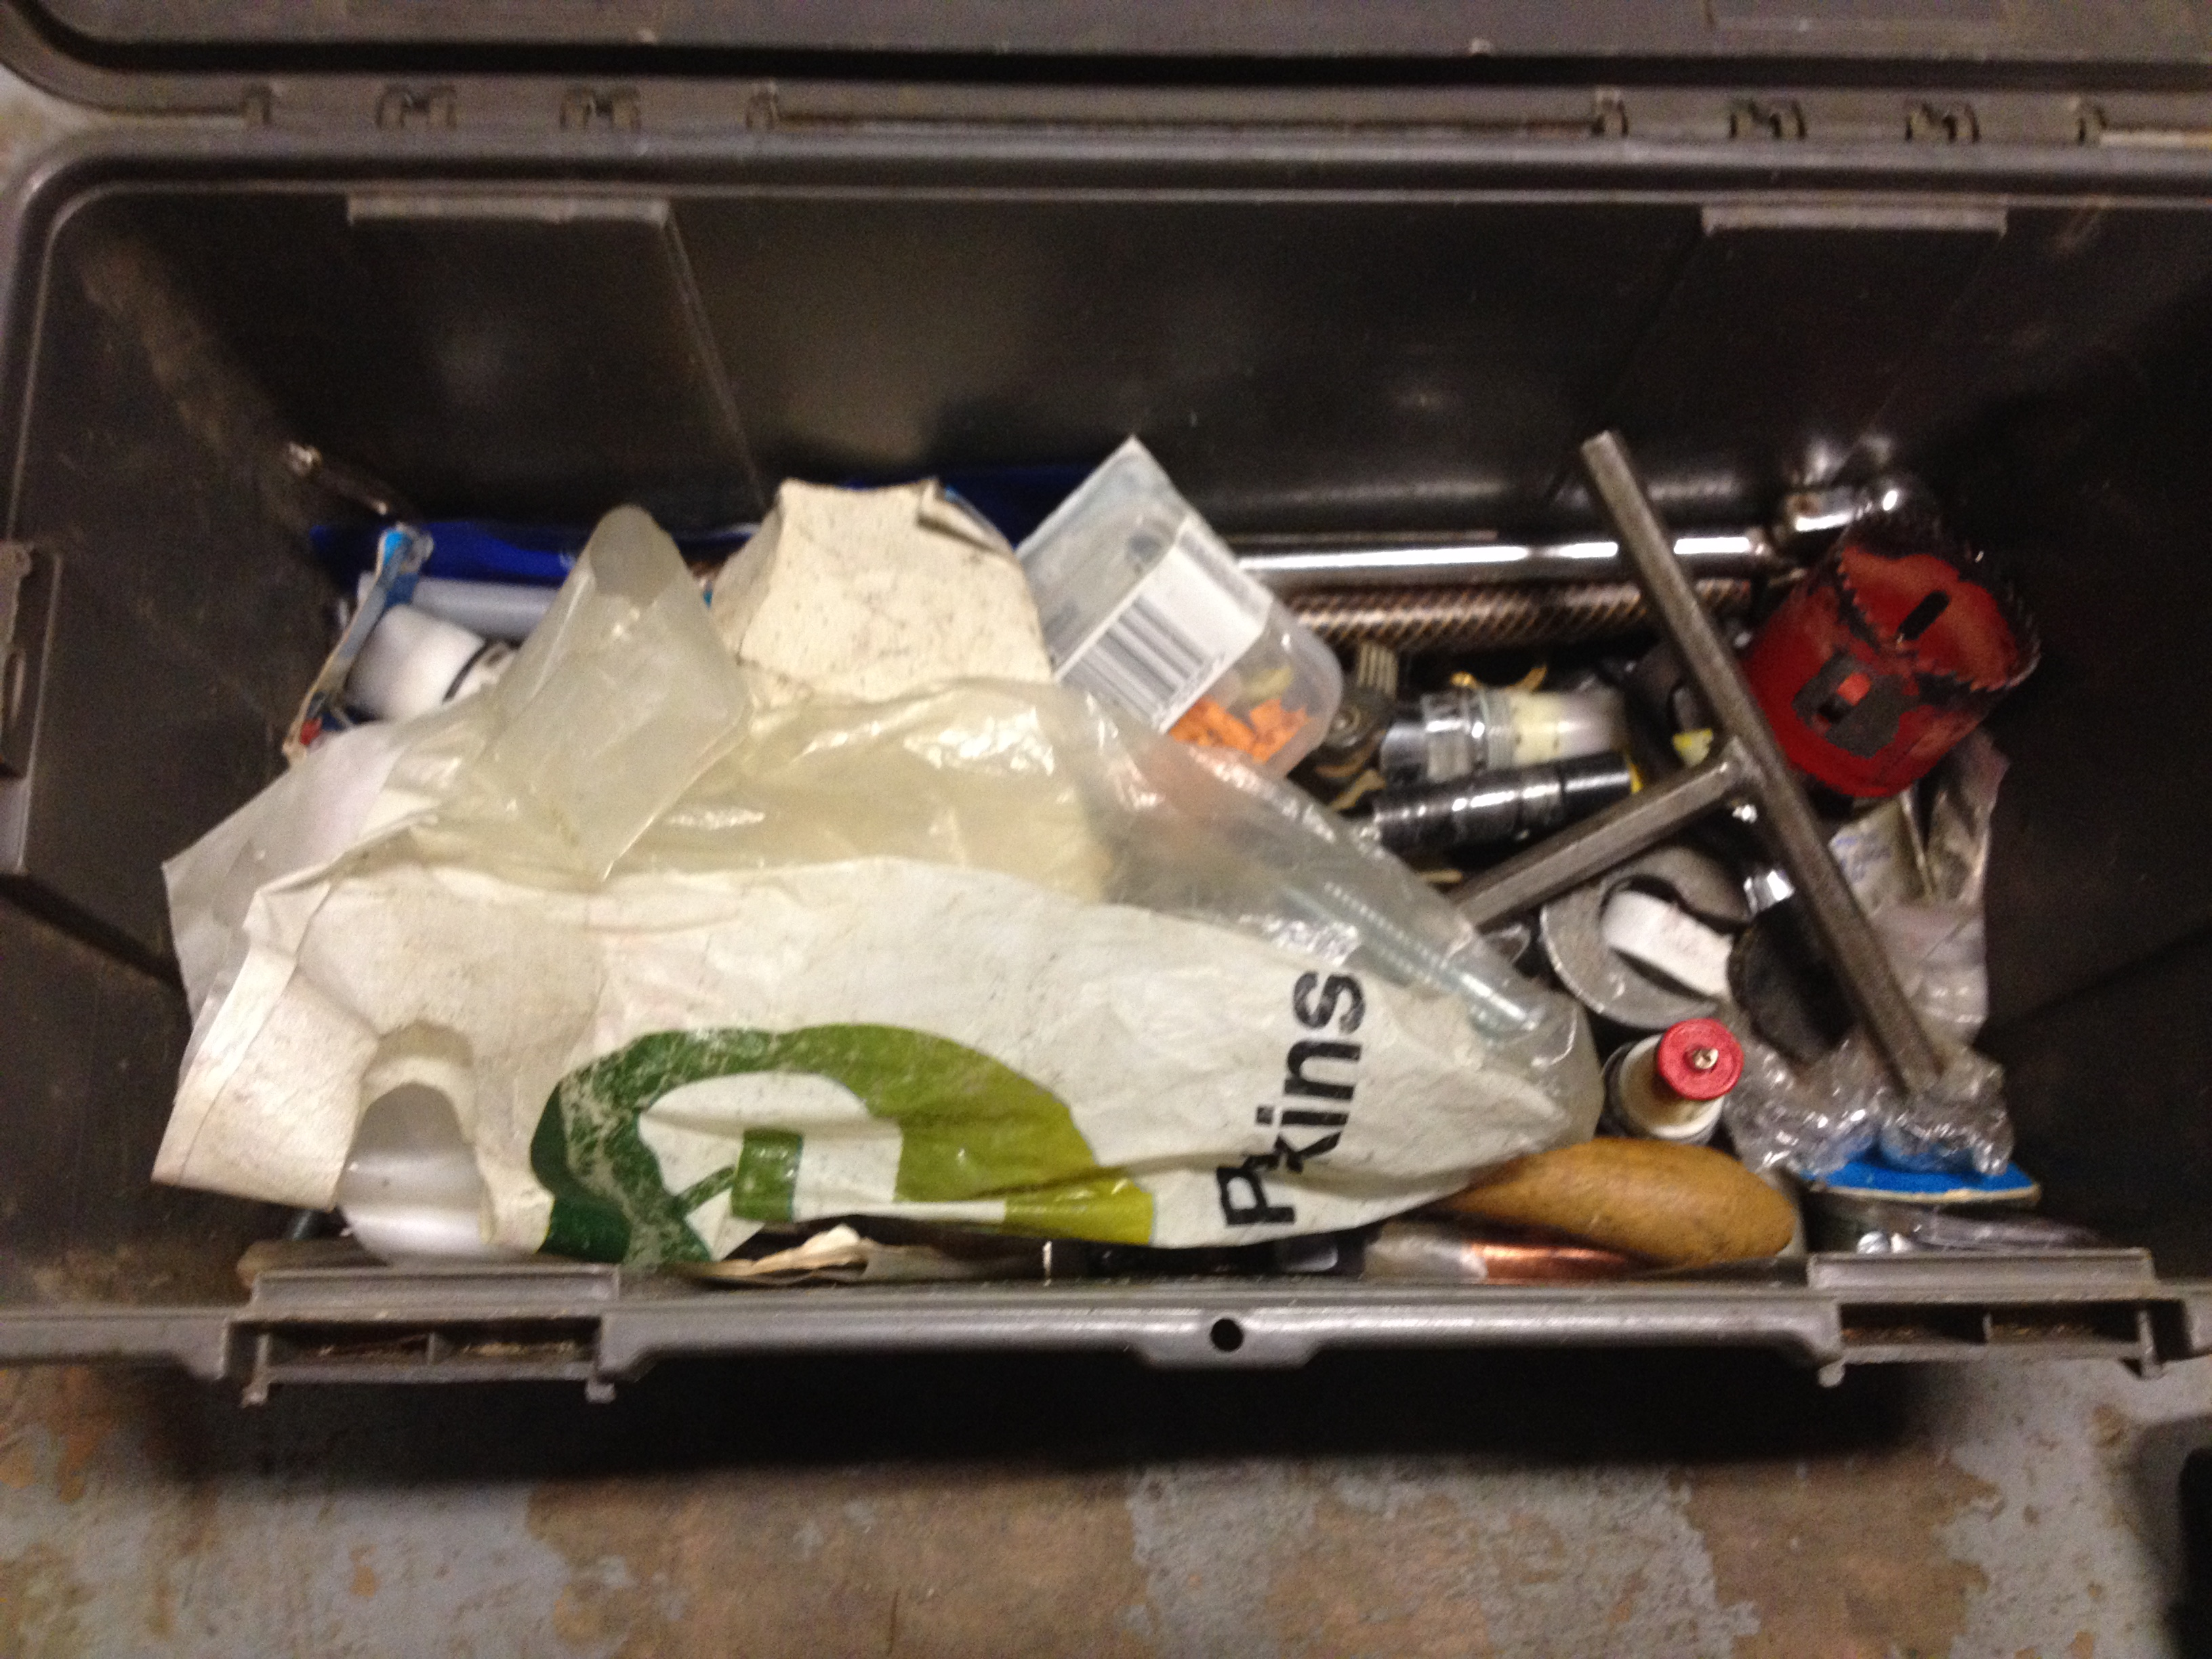 1 x Tool box with various tools and accessories inc Screwdrivers & Drill Bits - Image 3 of 3